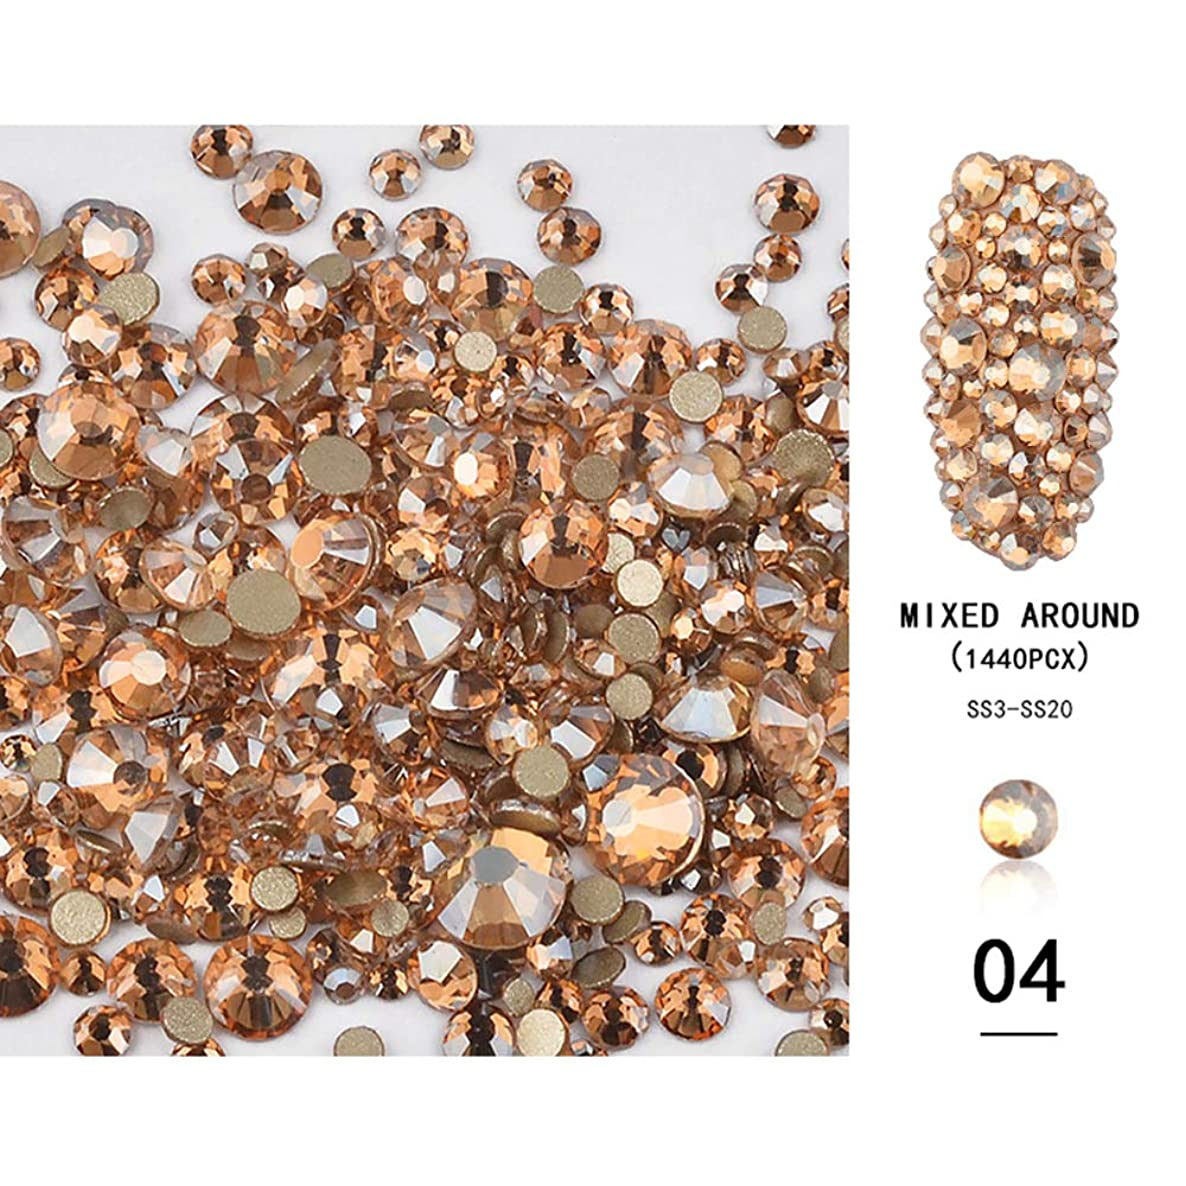 MIOBLET 1440pcs Crystals Nail Art Rhinestones Round Beads Flatback Glass Charms Gems Stones for Nails Decoration Mixed SS3 4 5 6 8 10 12 16 20